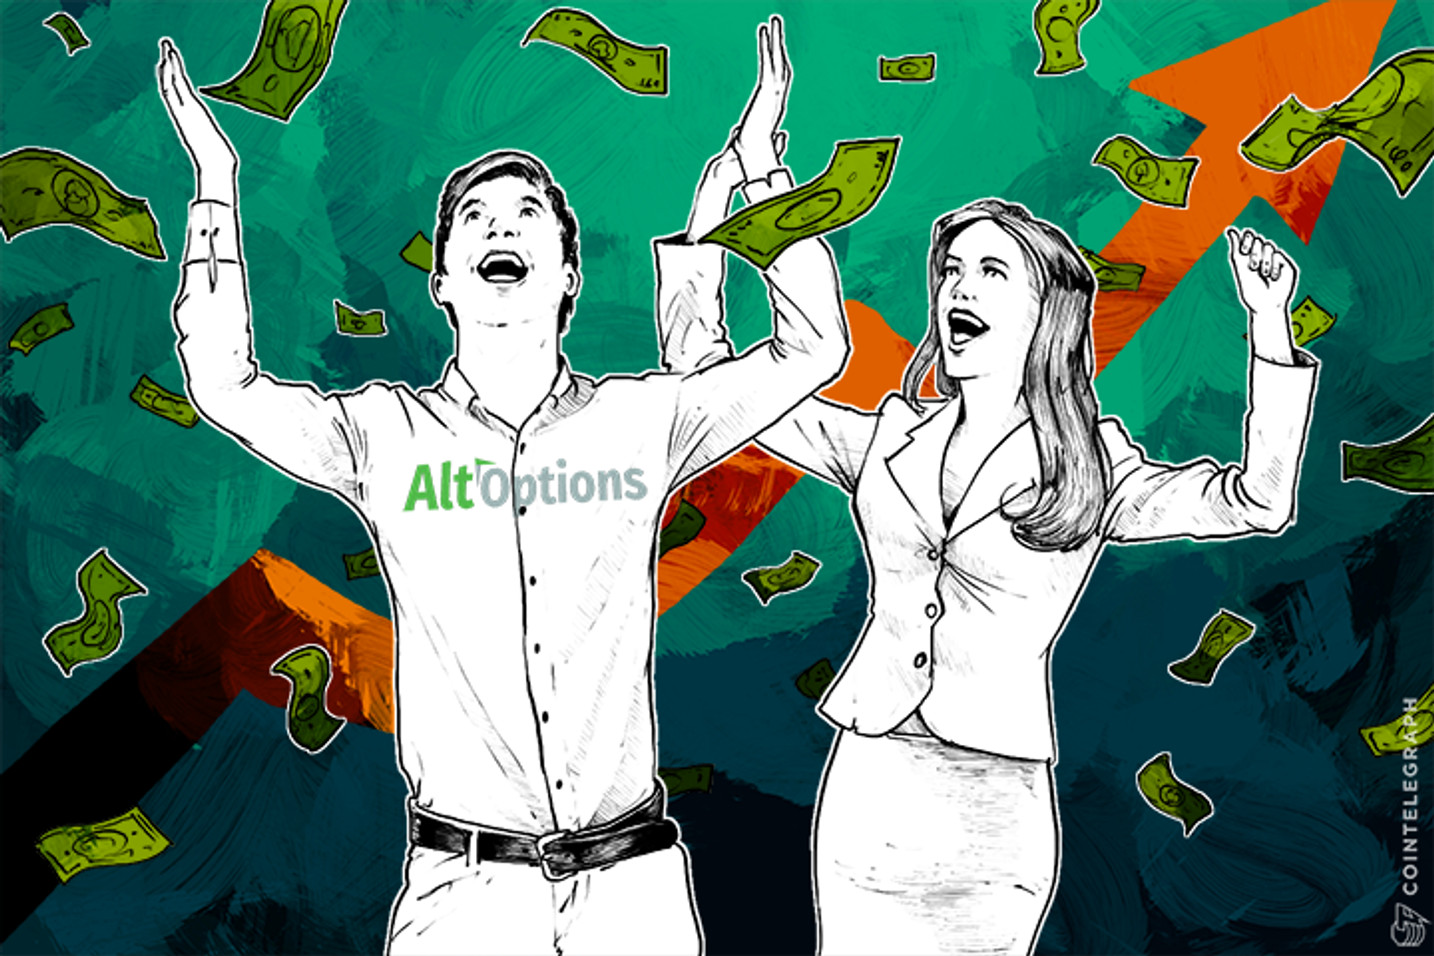 Meet Alt-Options: Profit on Bitcoin Volatility without Buying a Single Coin